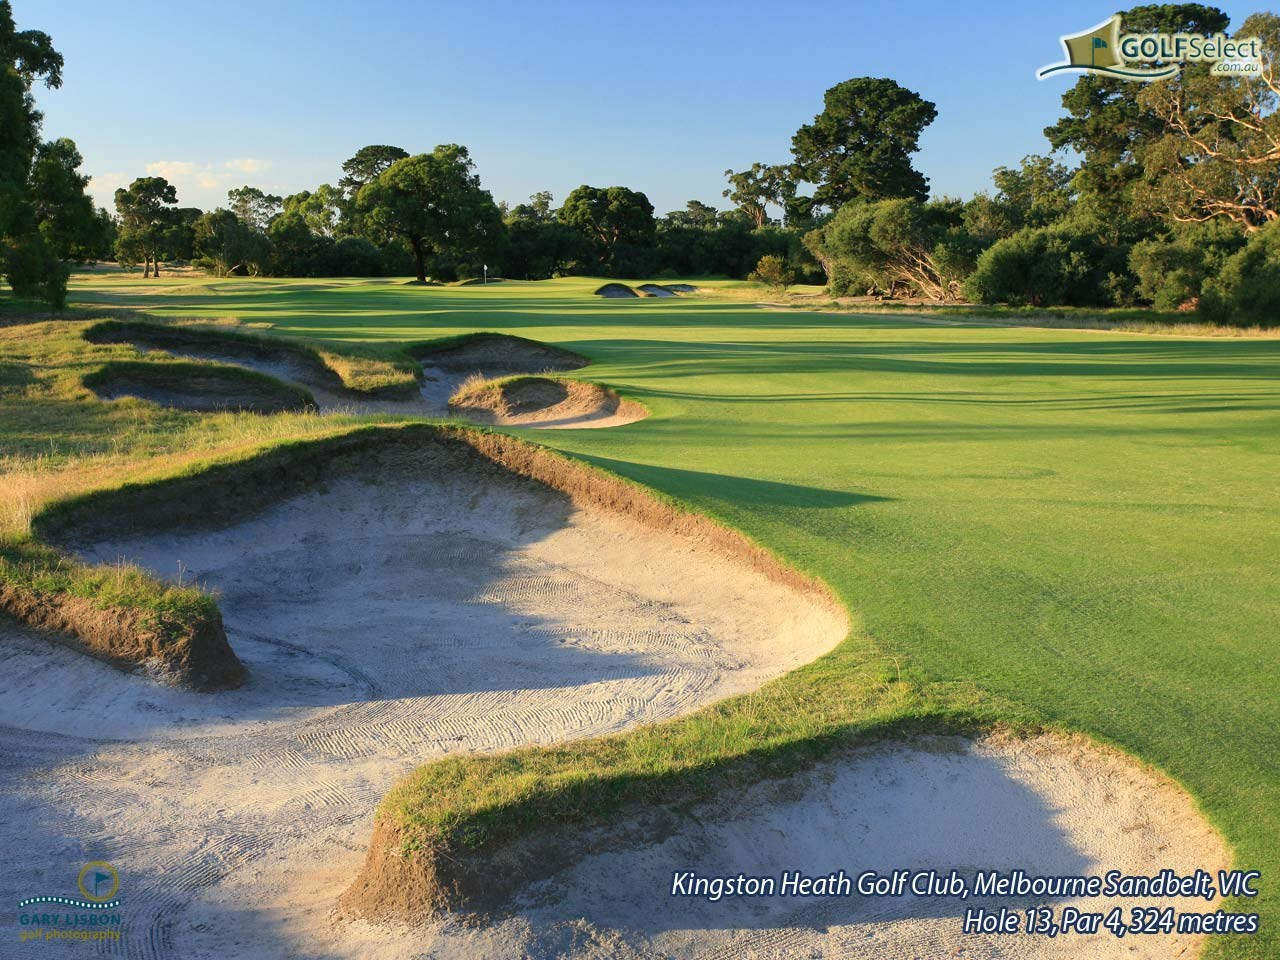 Kingston Heath Golf Club Hole 13, Par 4, 324 metres